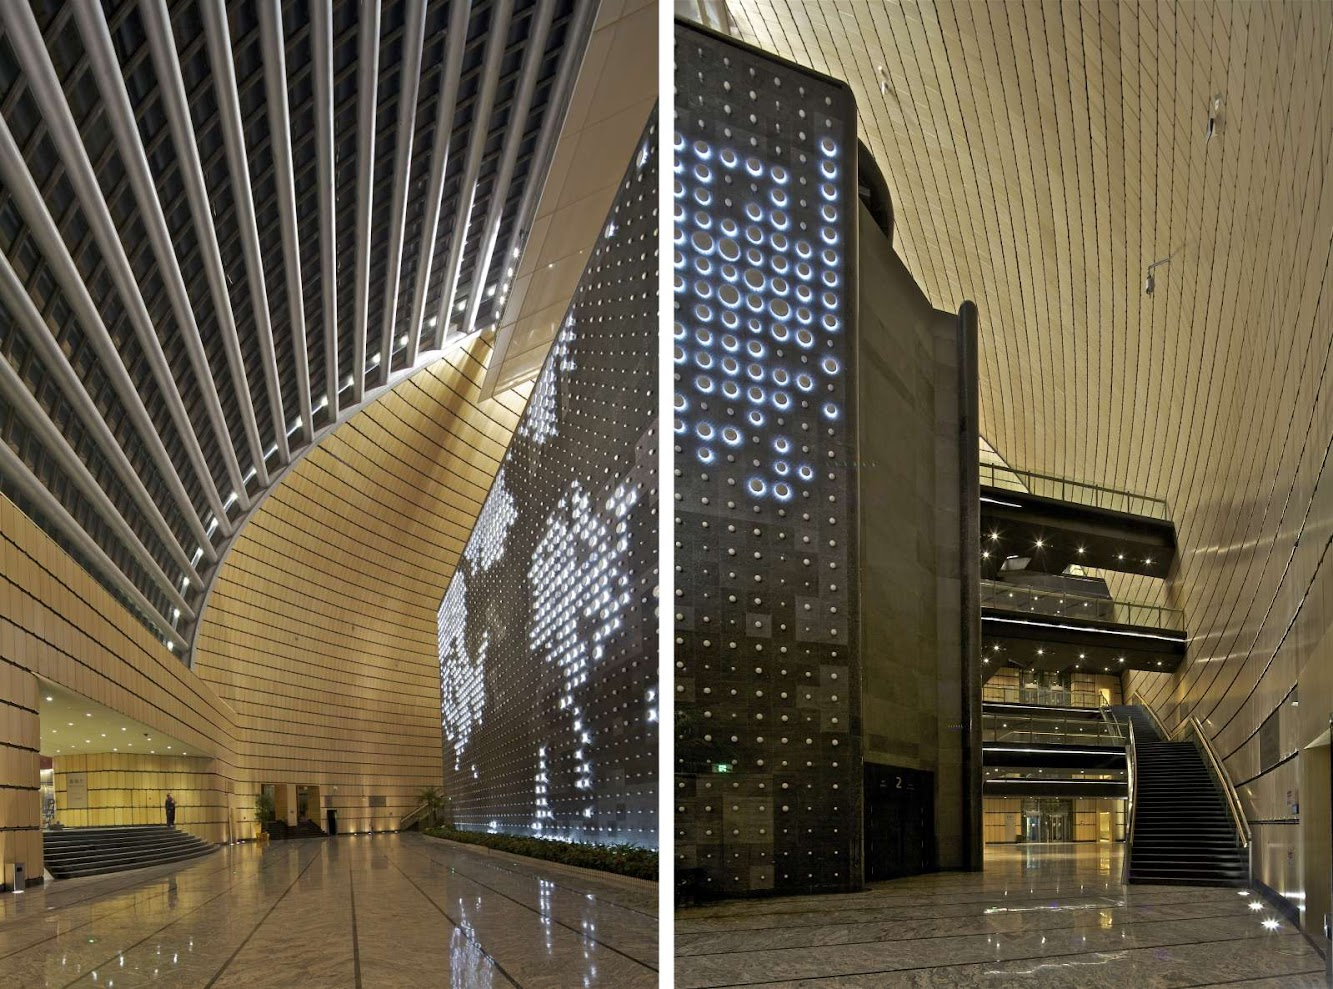 Jinan Grand Theater by Paul Andreu Architecte